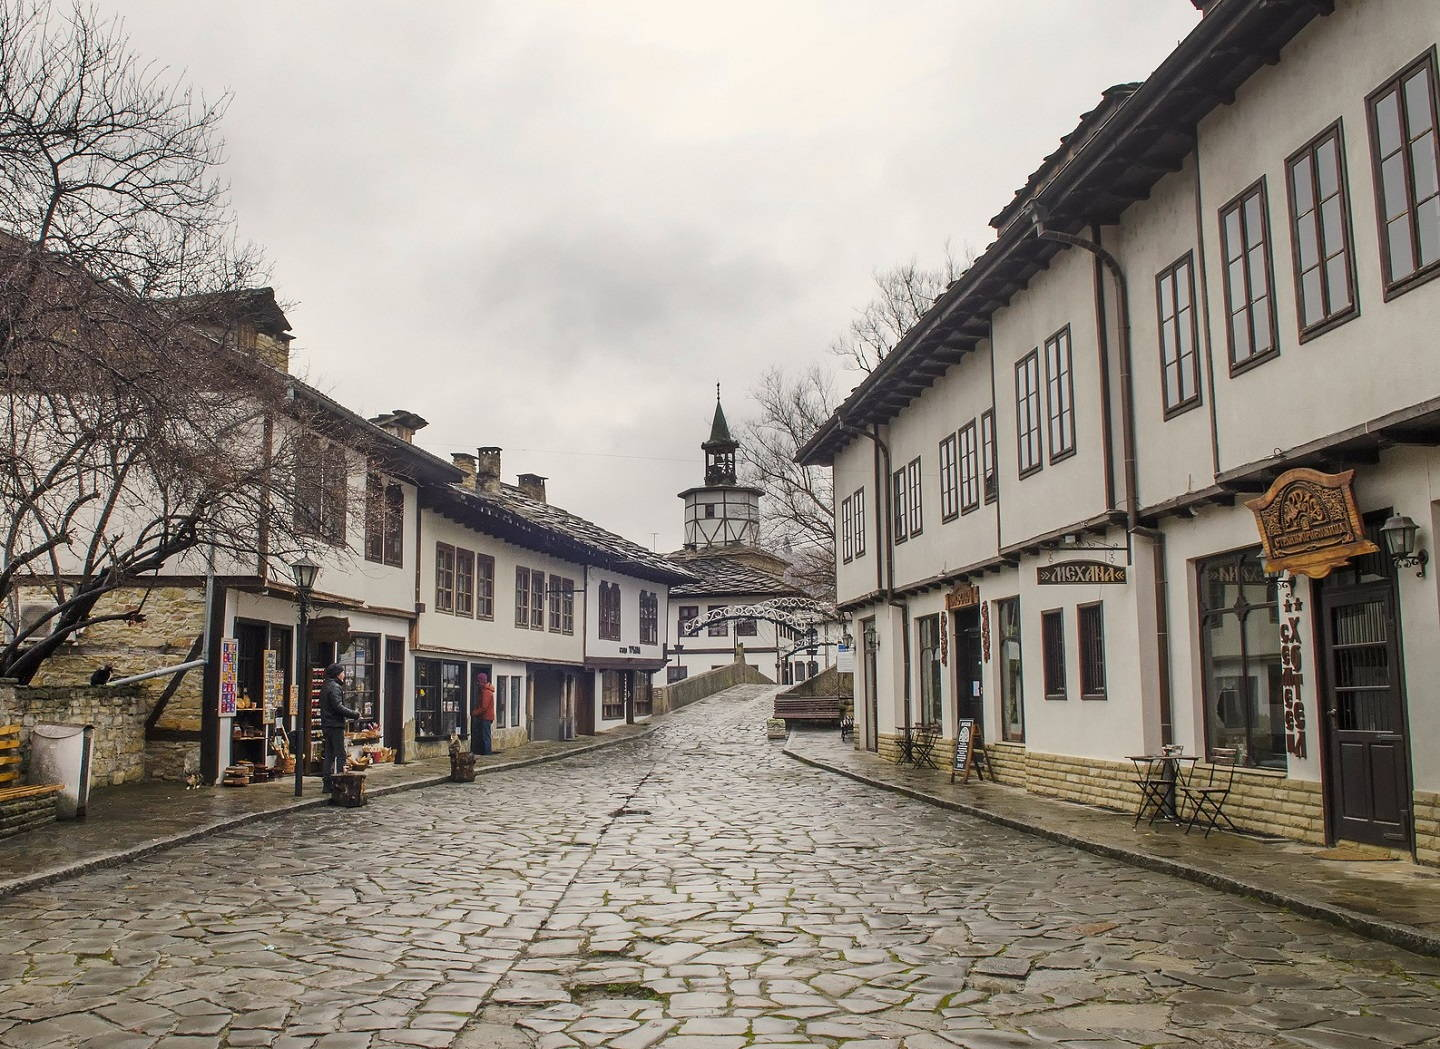 The old town of Tryavna